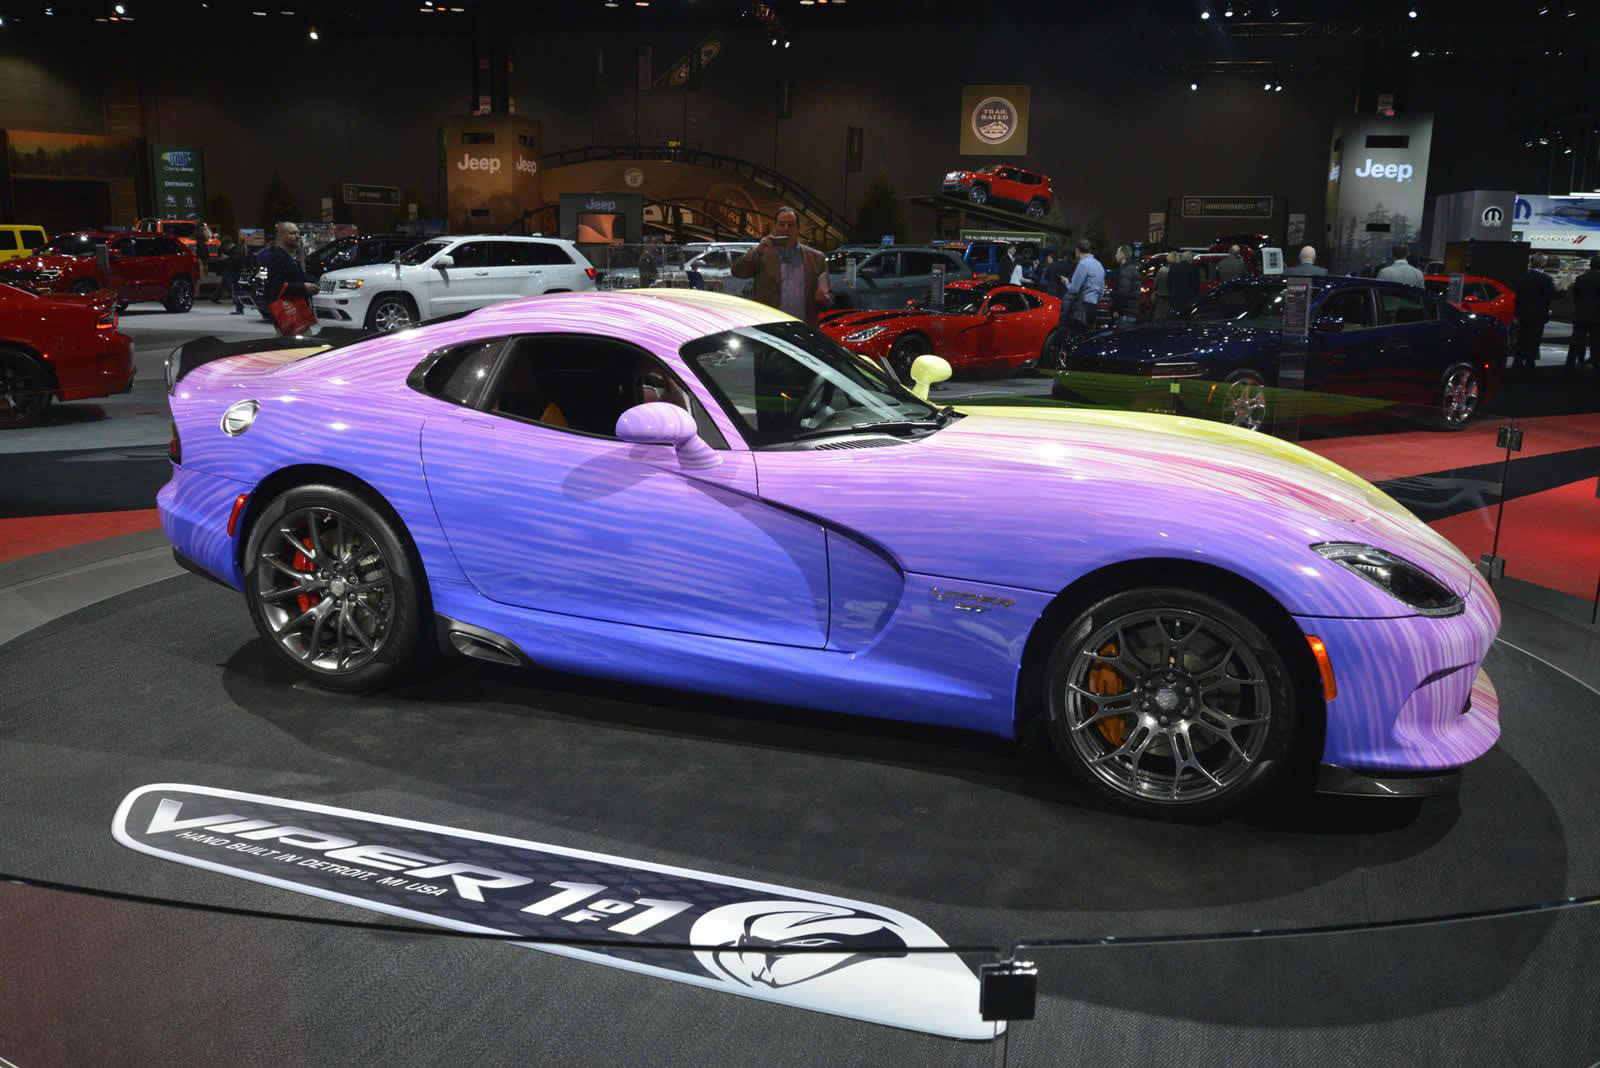 Honda Pilot Models >> Psychodelic Dodge Viper GTC Revealed at 2015 Chicago Auto Show